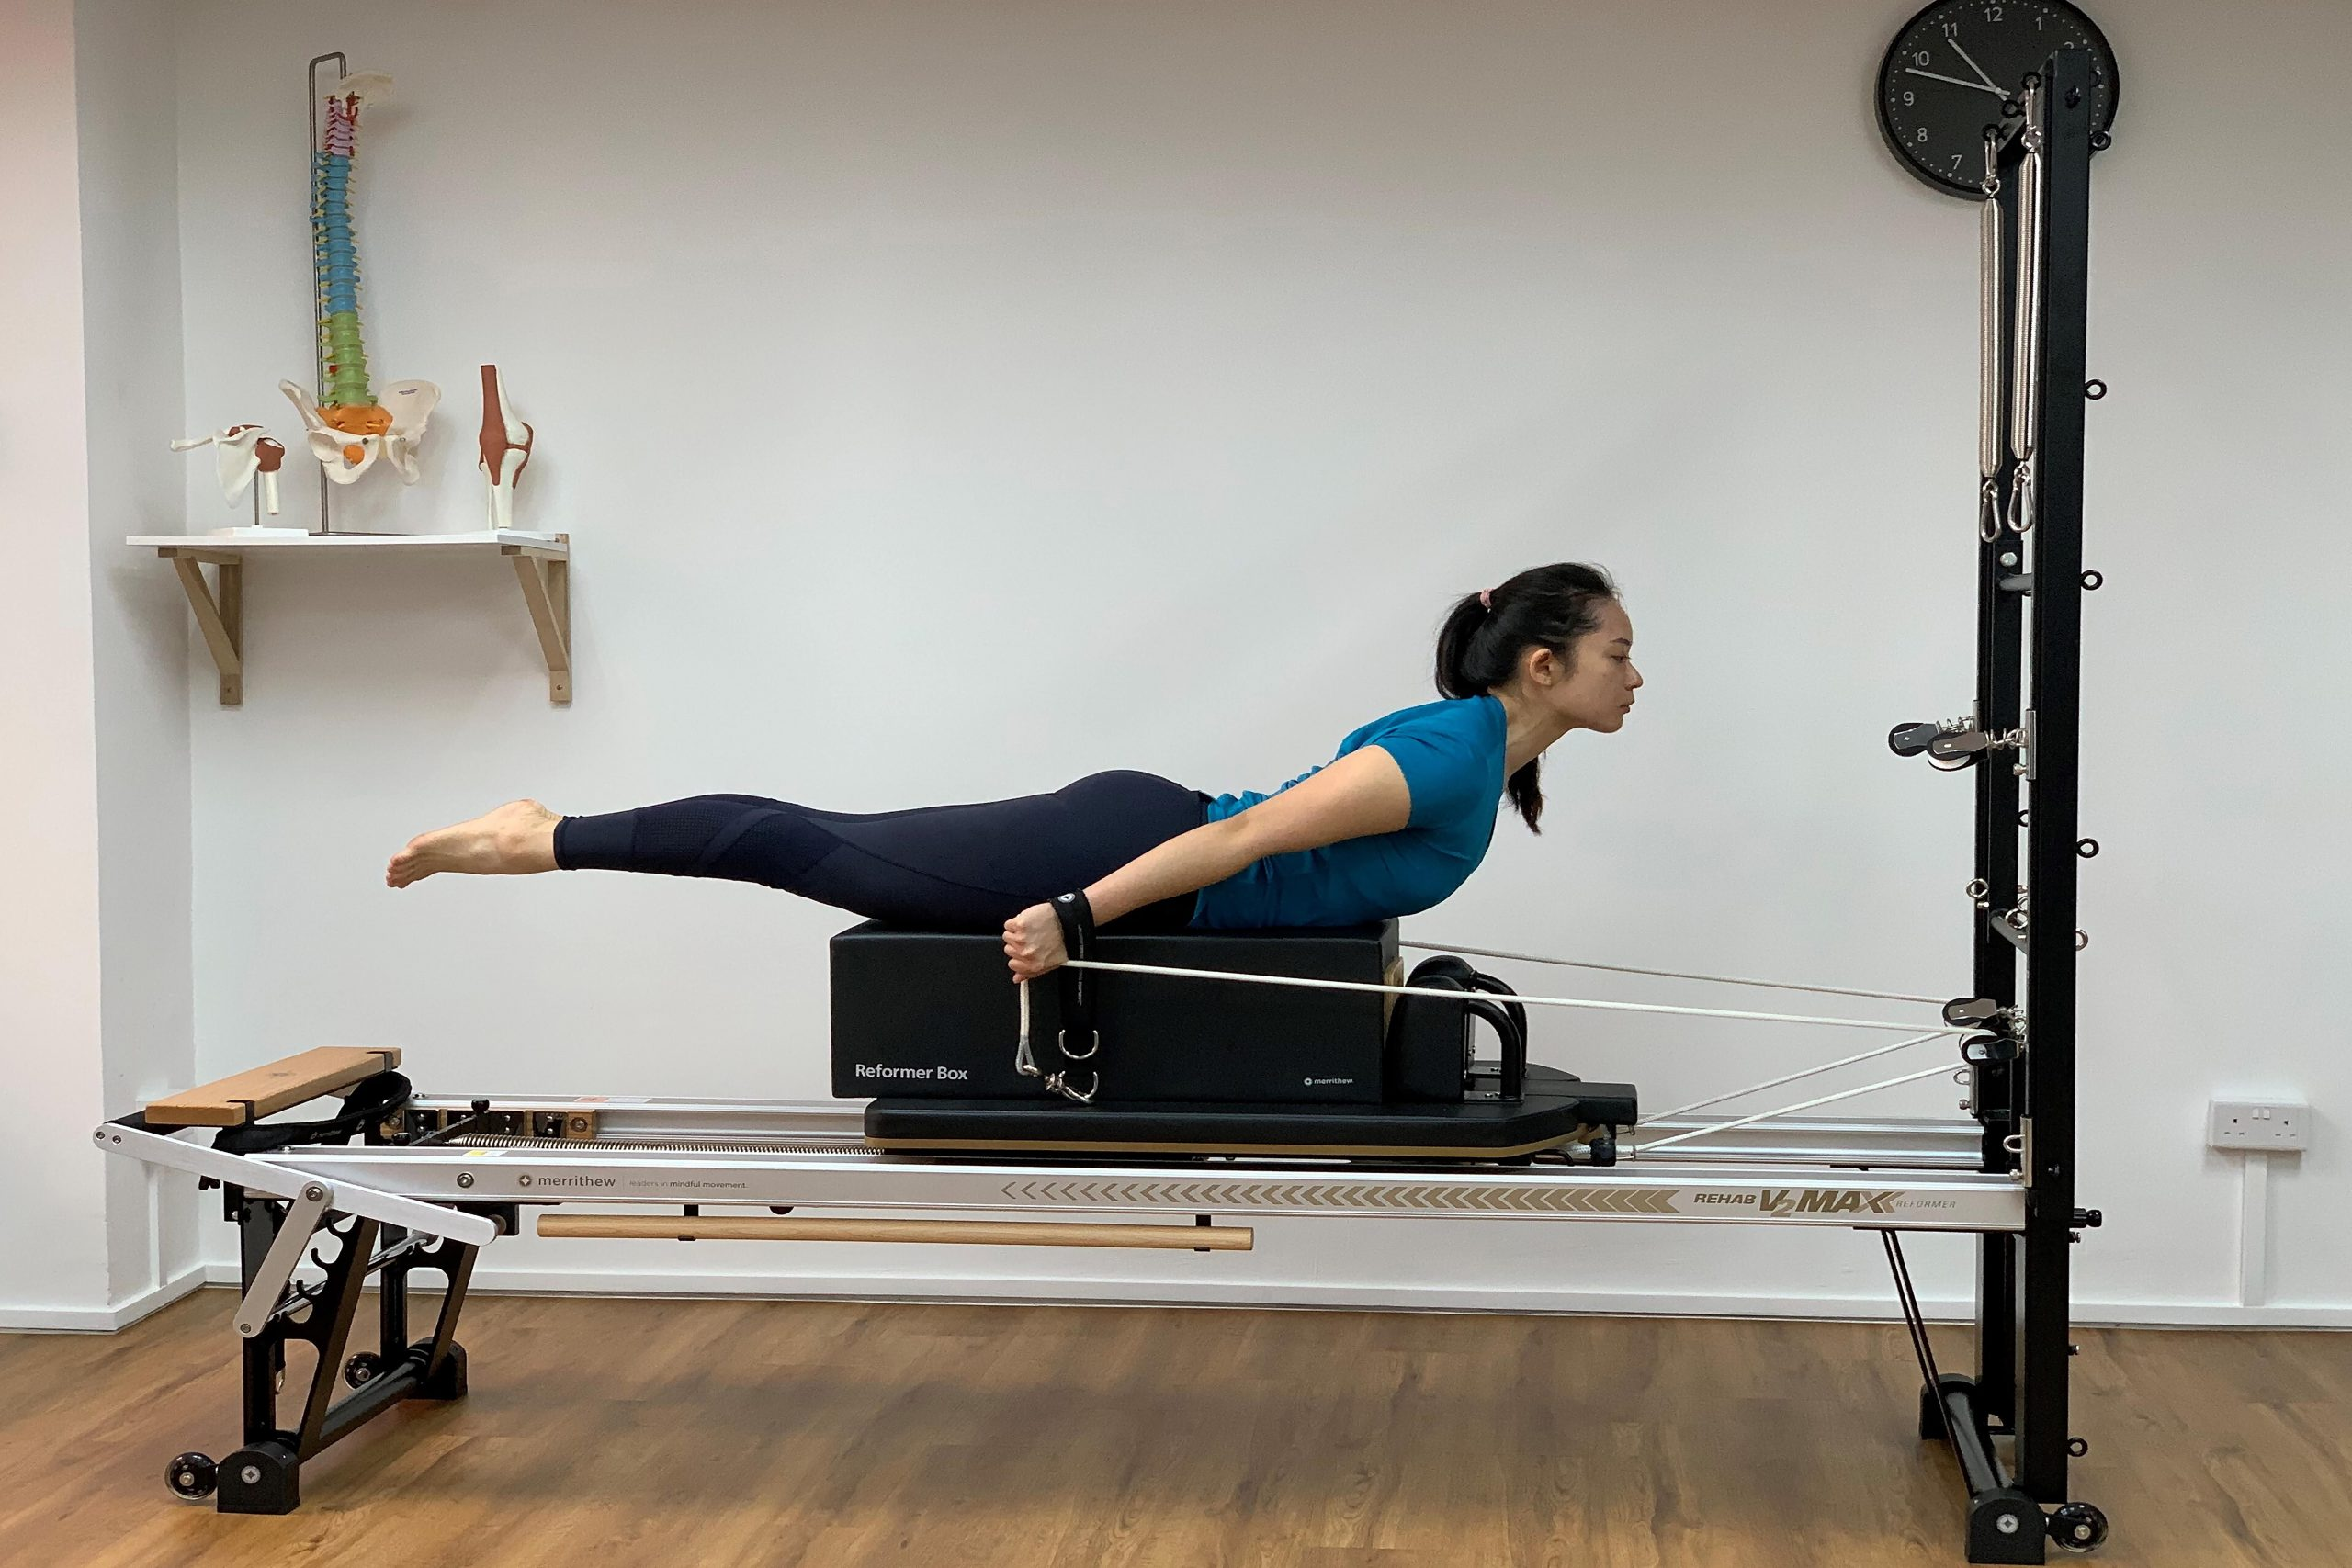 sharon pilates